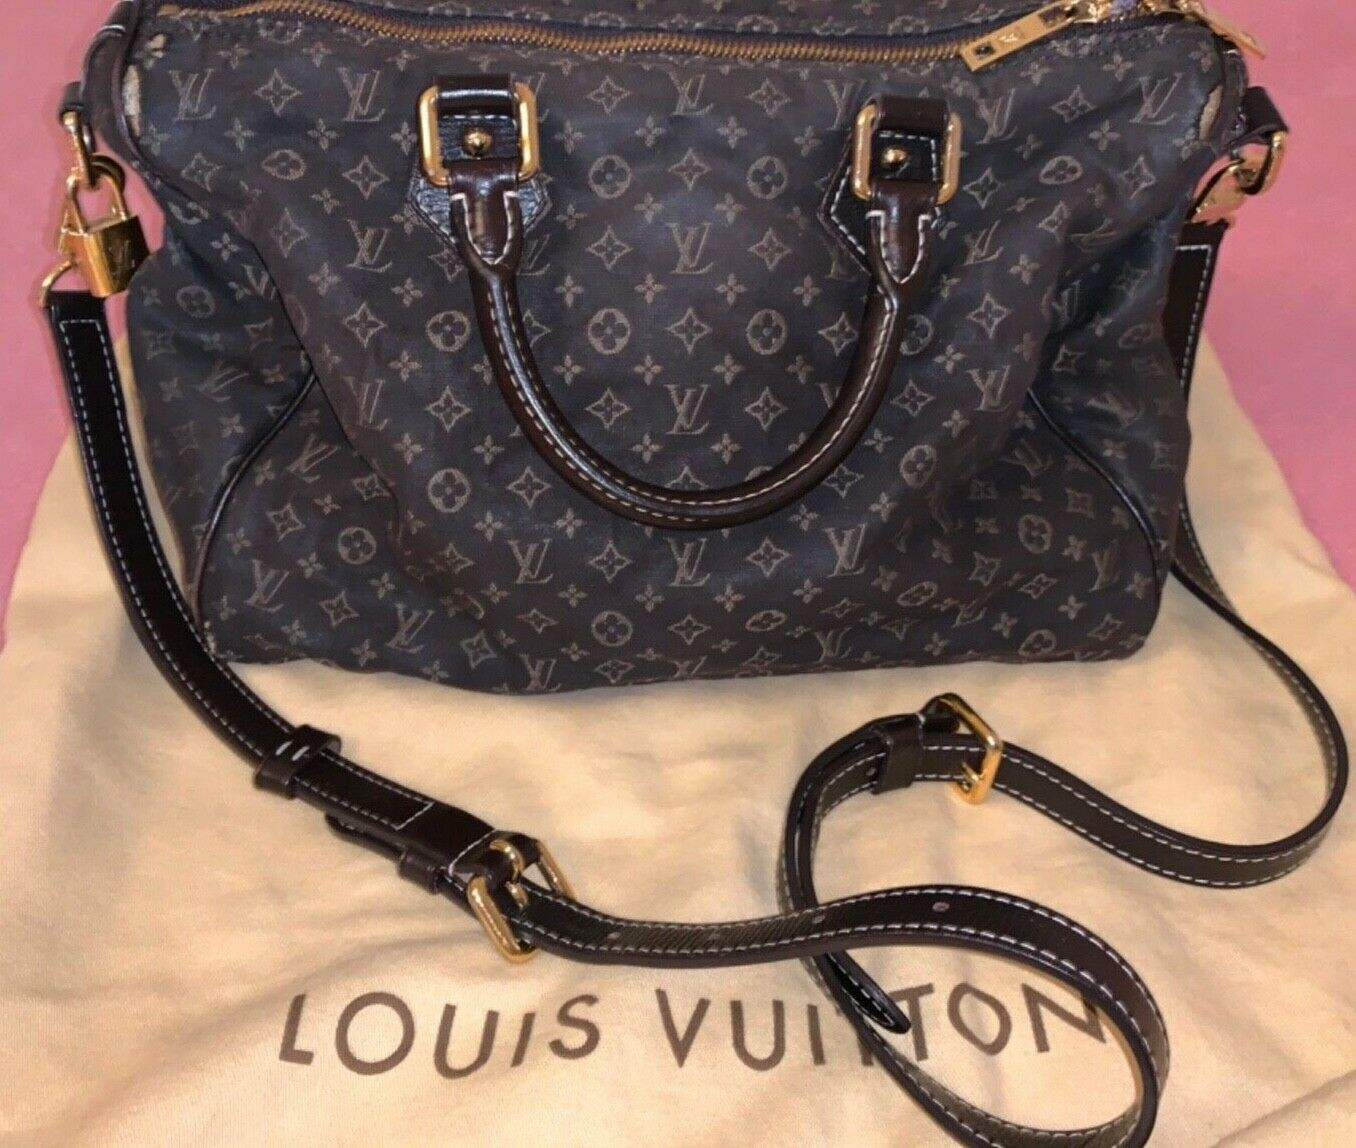 Original Louis Vuitton Tasche Damen - 599.00,Kaufpreis 599,datum 01.07.2020 22:12:37,Website rebelle.com